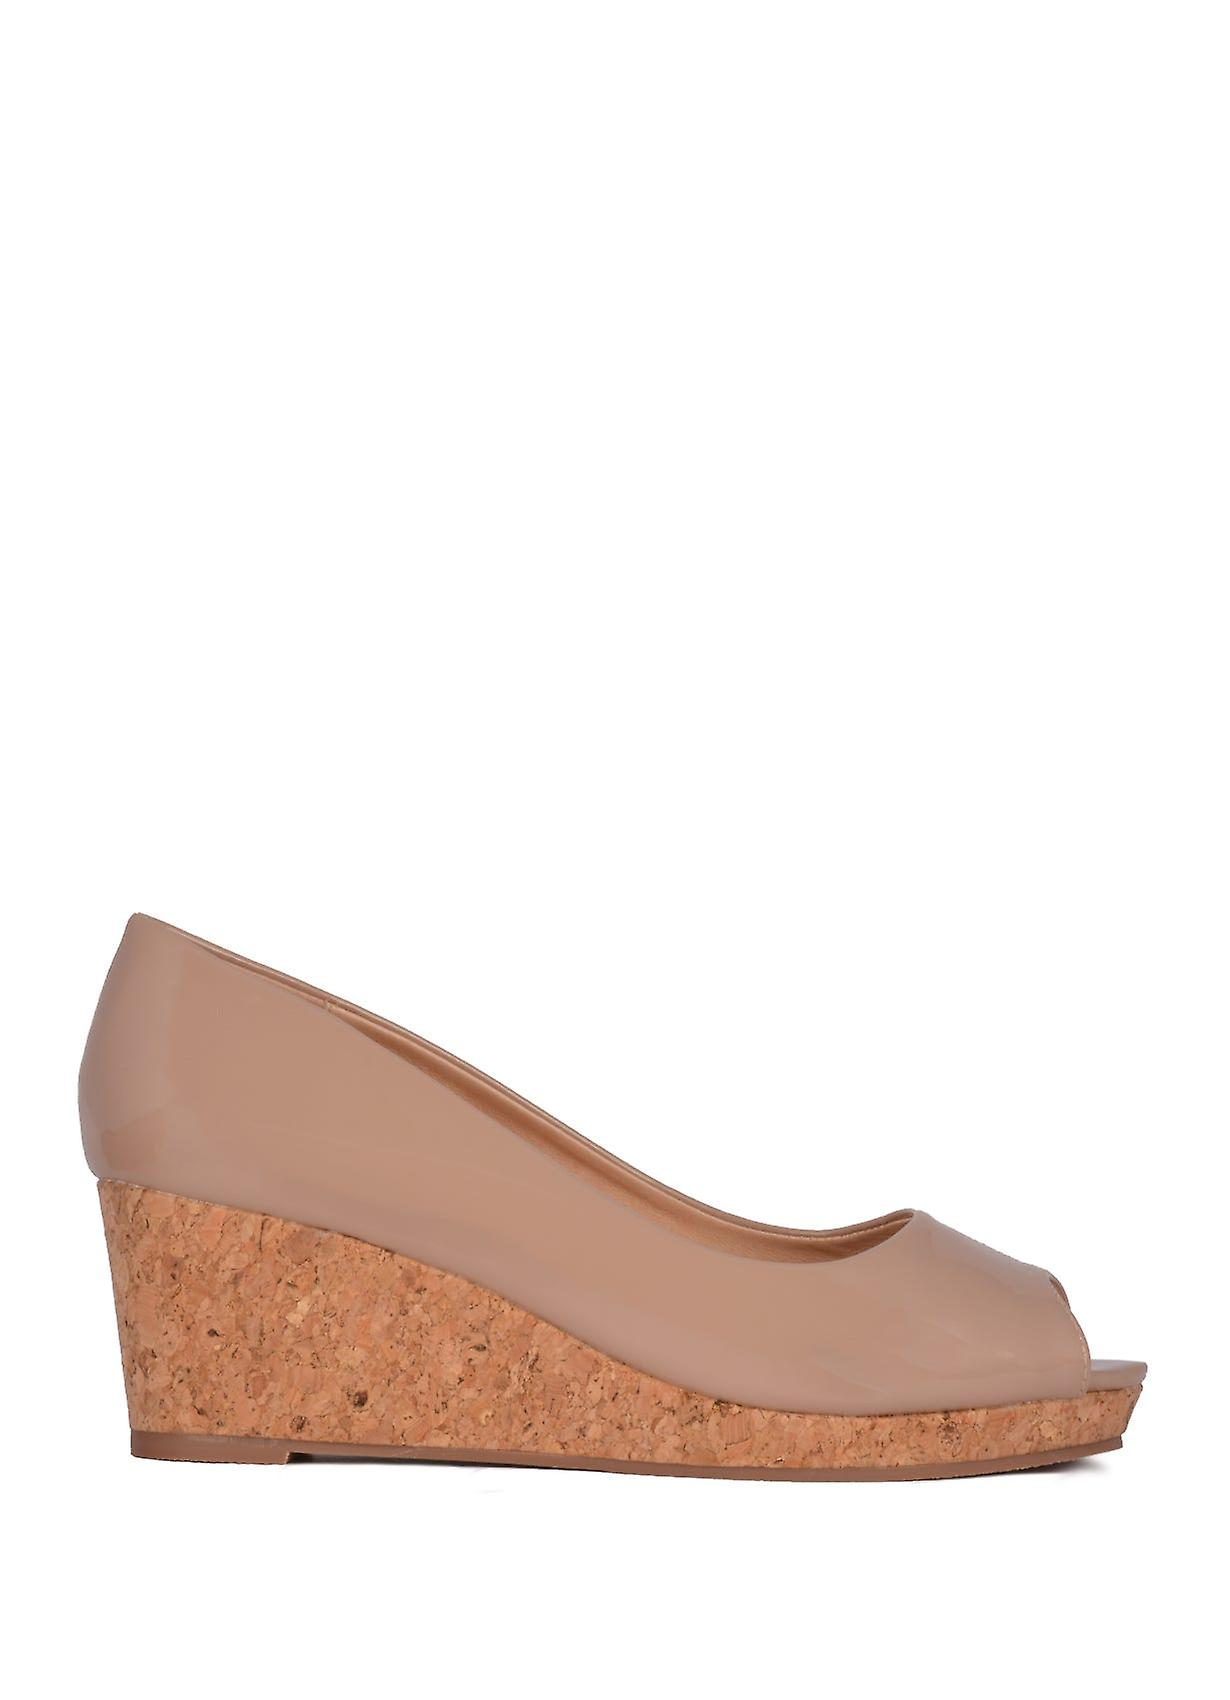 Lotus Patent Odina Peep-Toe Wedge Shoes in Nude mStkP